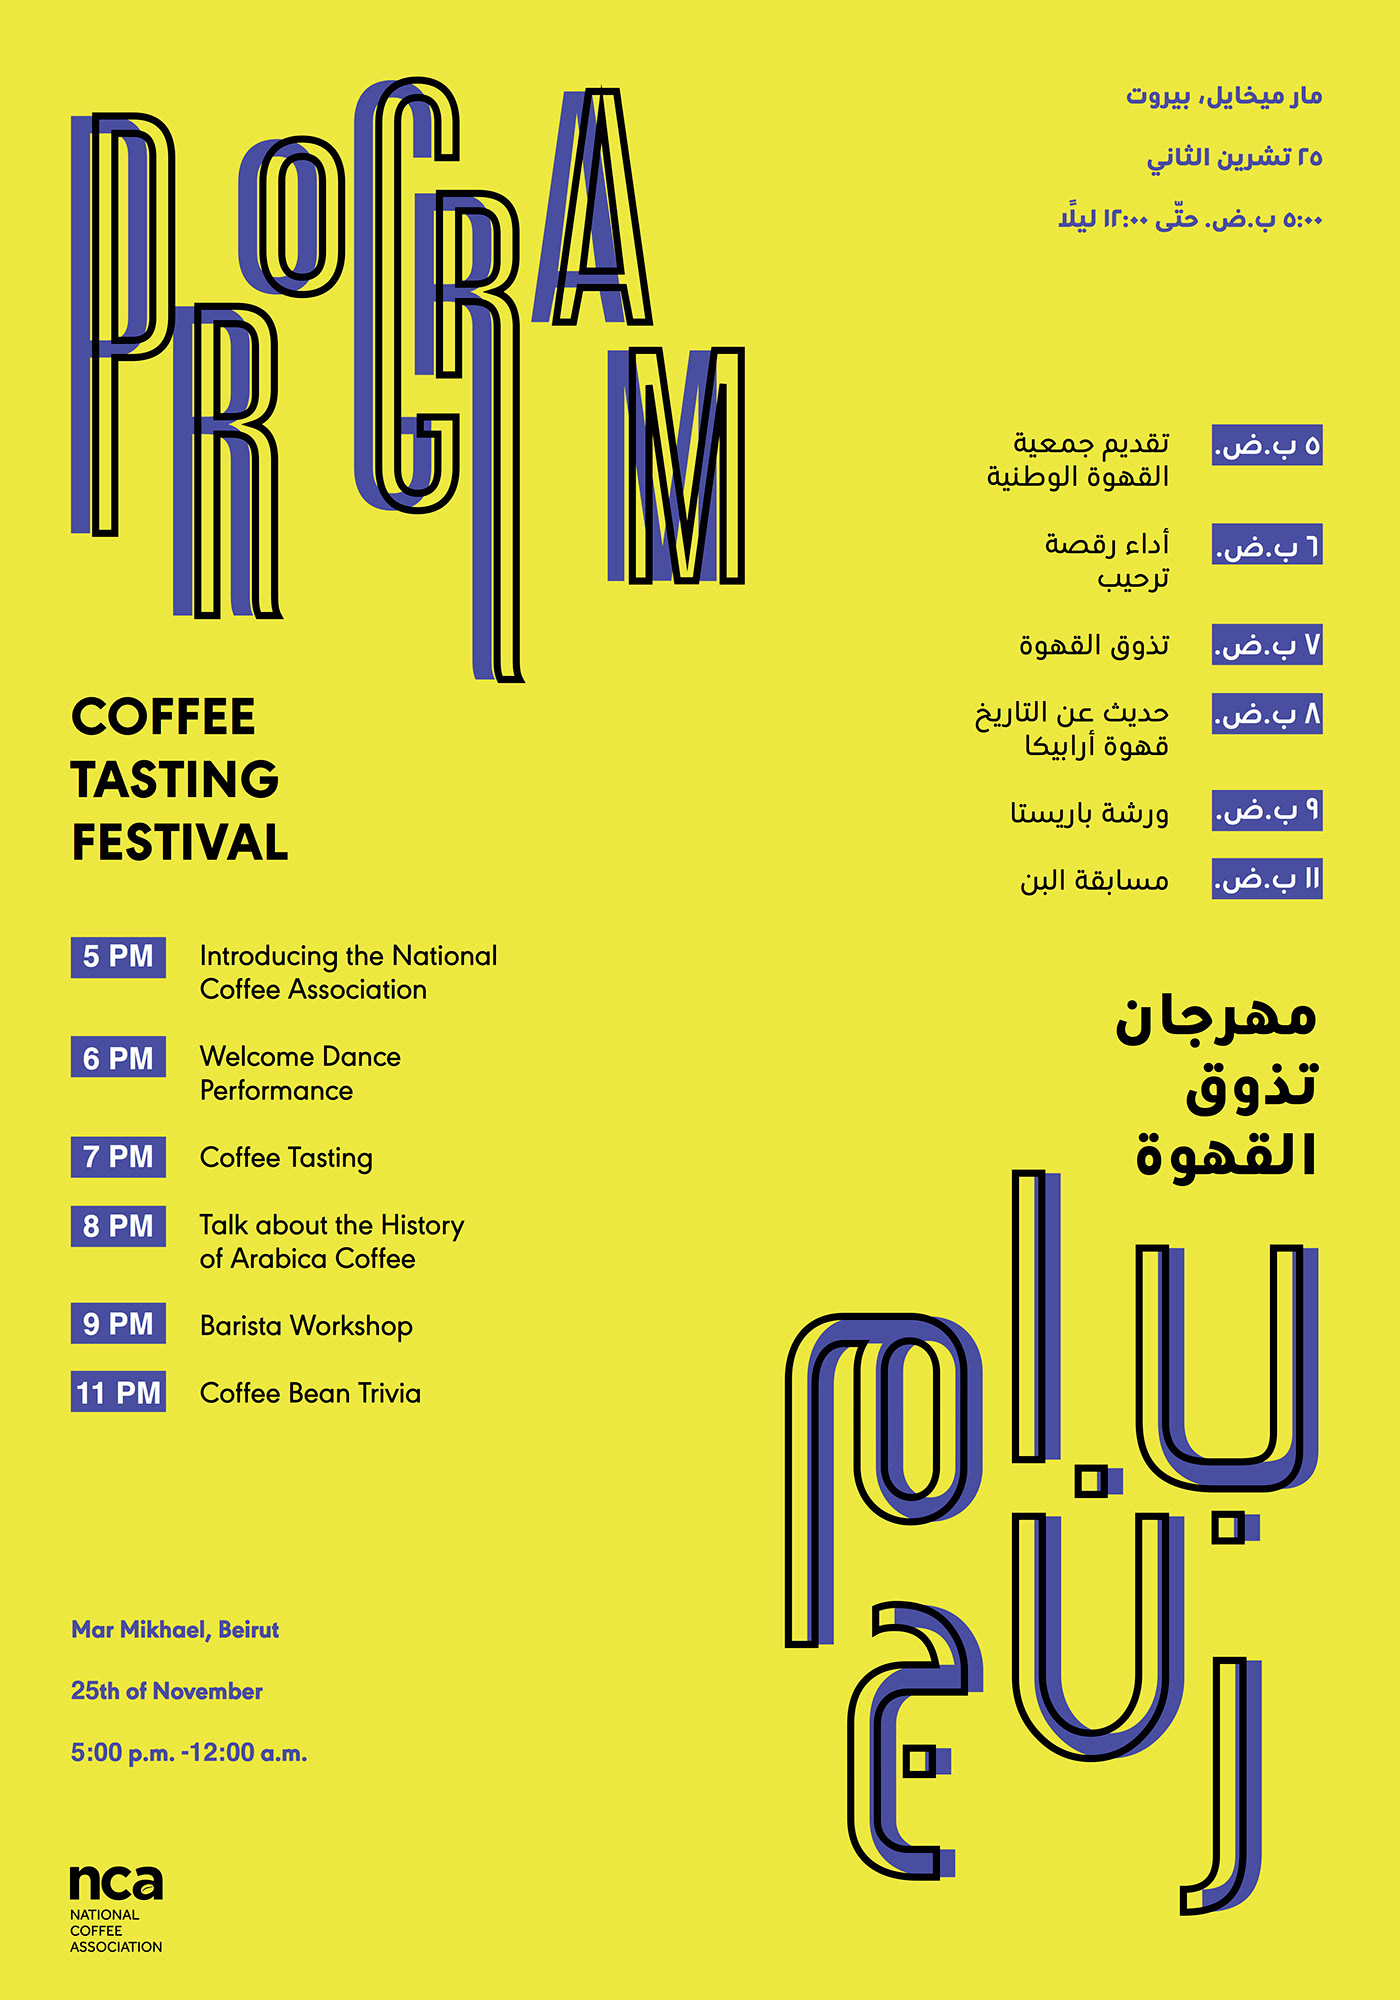 arabic bilingual Coffee festival Latin poster Poster Design Promotional type typography